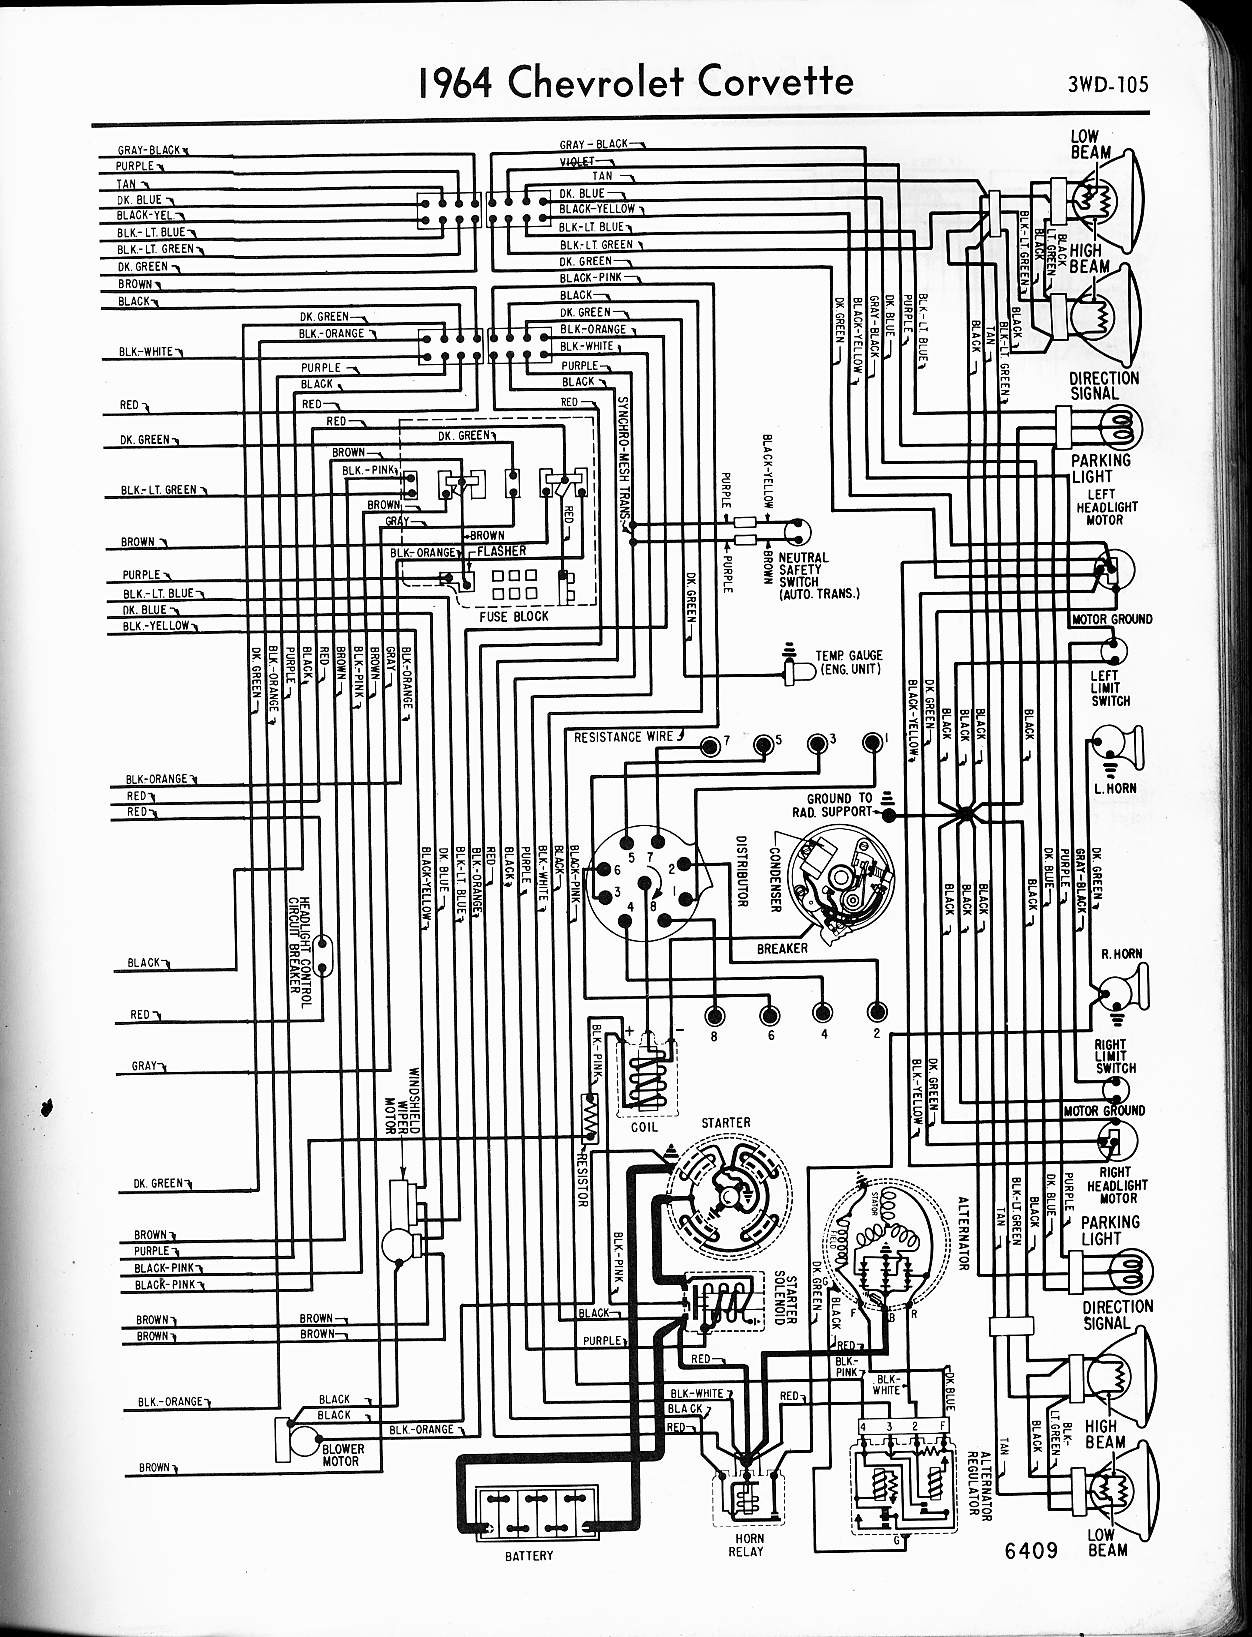 89 corvette wiper wiring diagrams product wiring diagrams u2022 rh genesisventures us 82 Corvette Wiring Diagram 1979 corvette ac wiring diagram